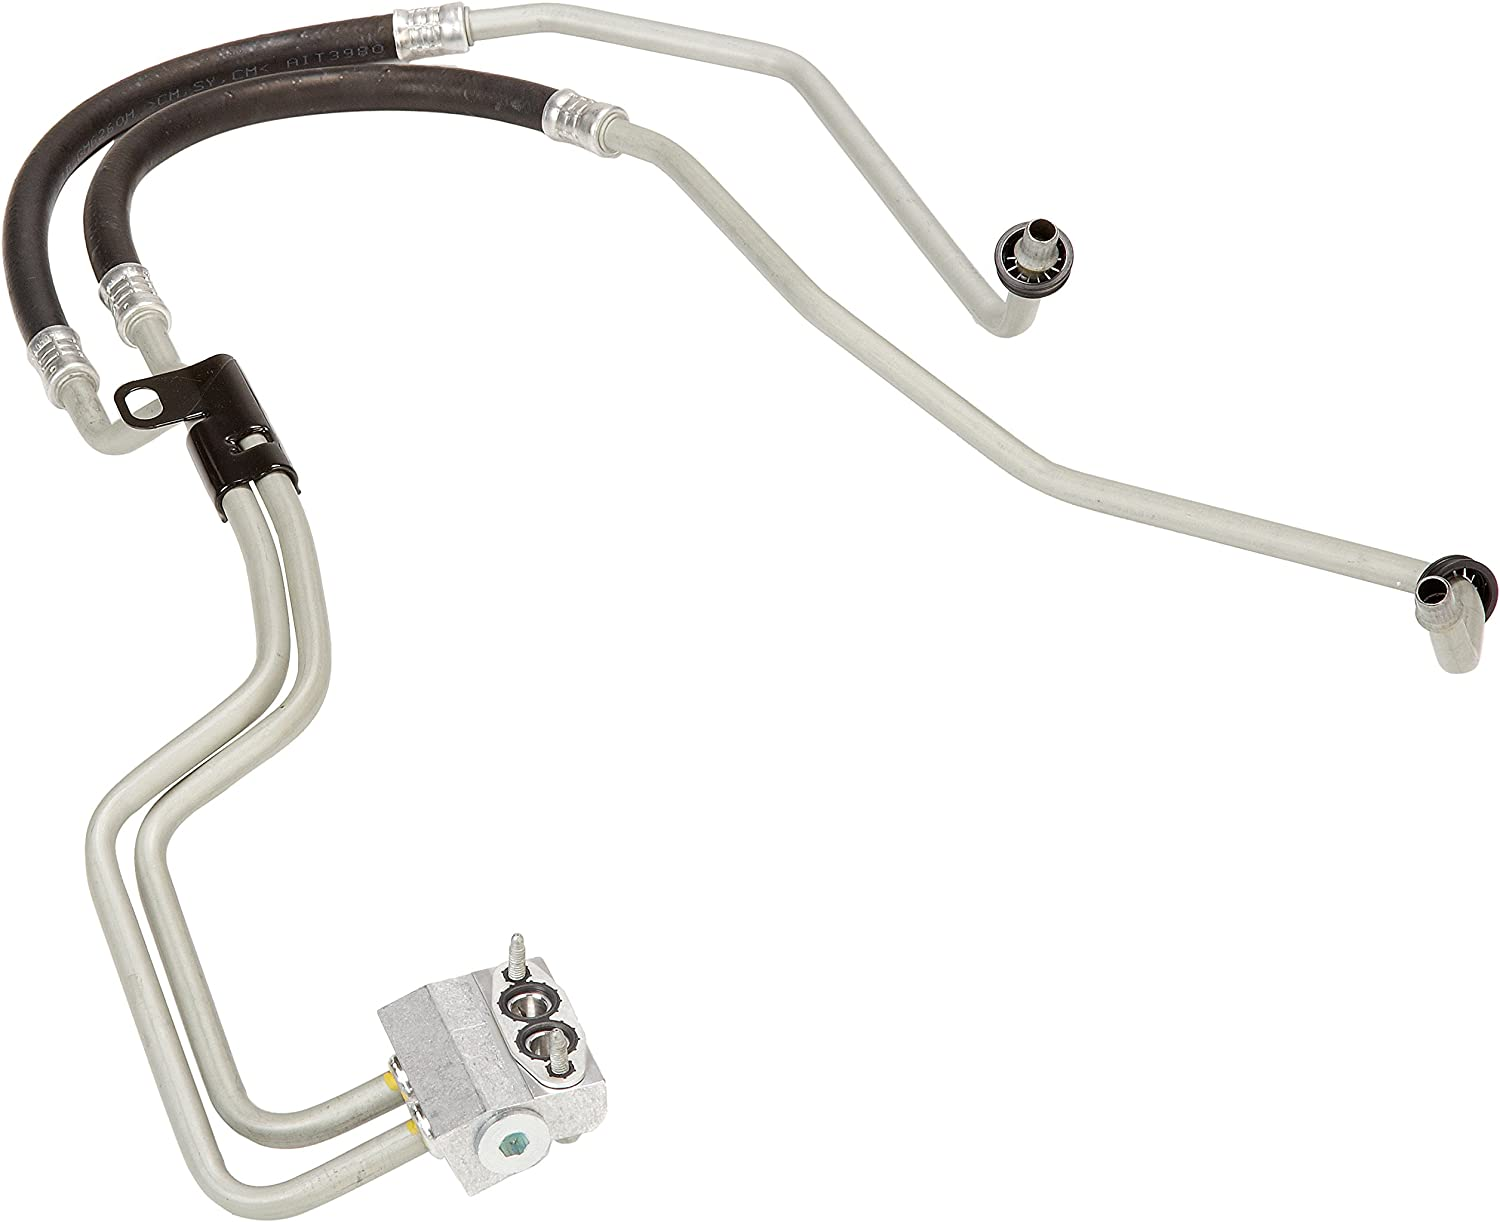 Gasket and Bolt ACDelco 20828695 GM Original Equipment Engine Oil Cooler Hose Kit with Bracket